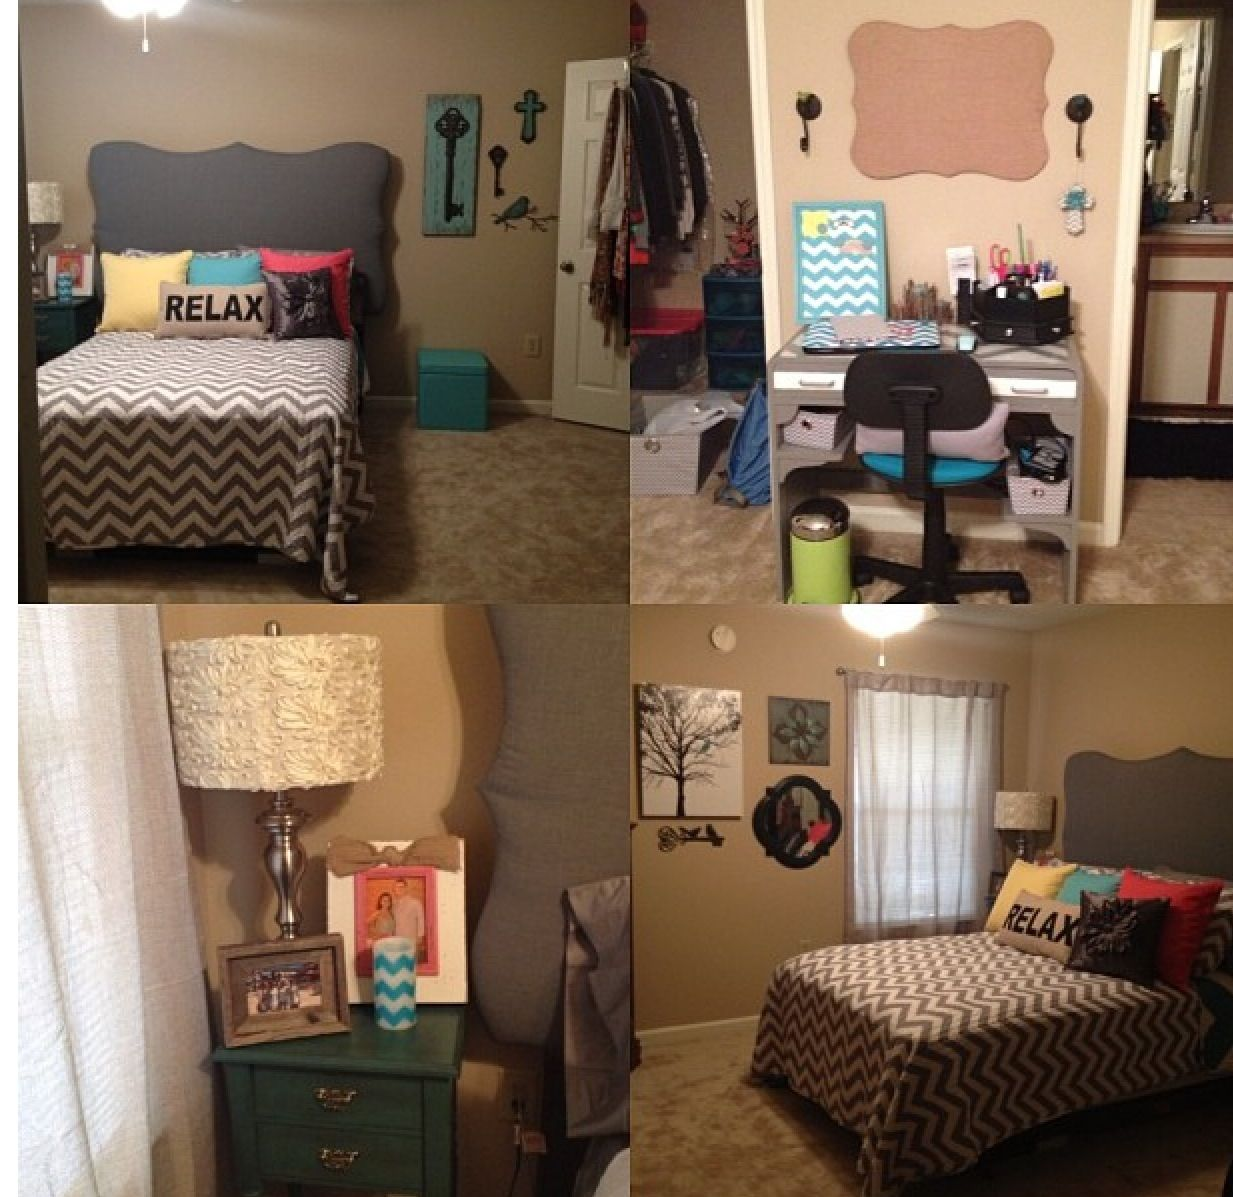 College Apartments: College Spaces (Girly)